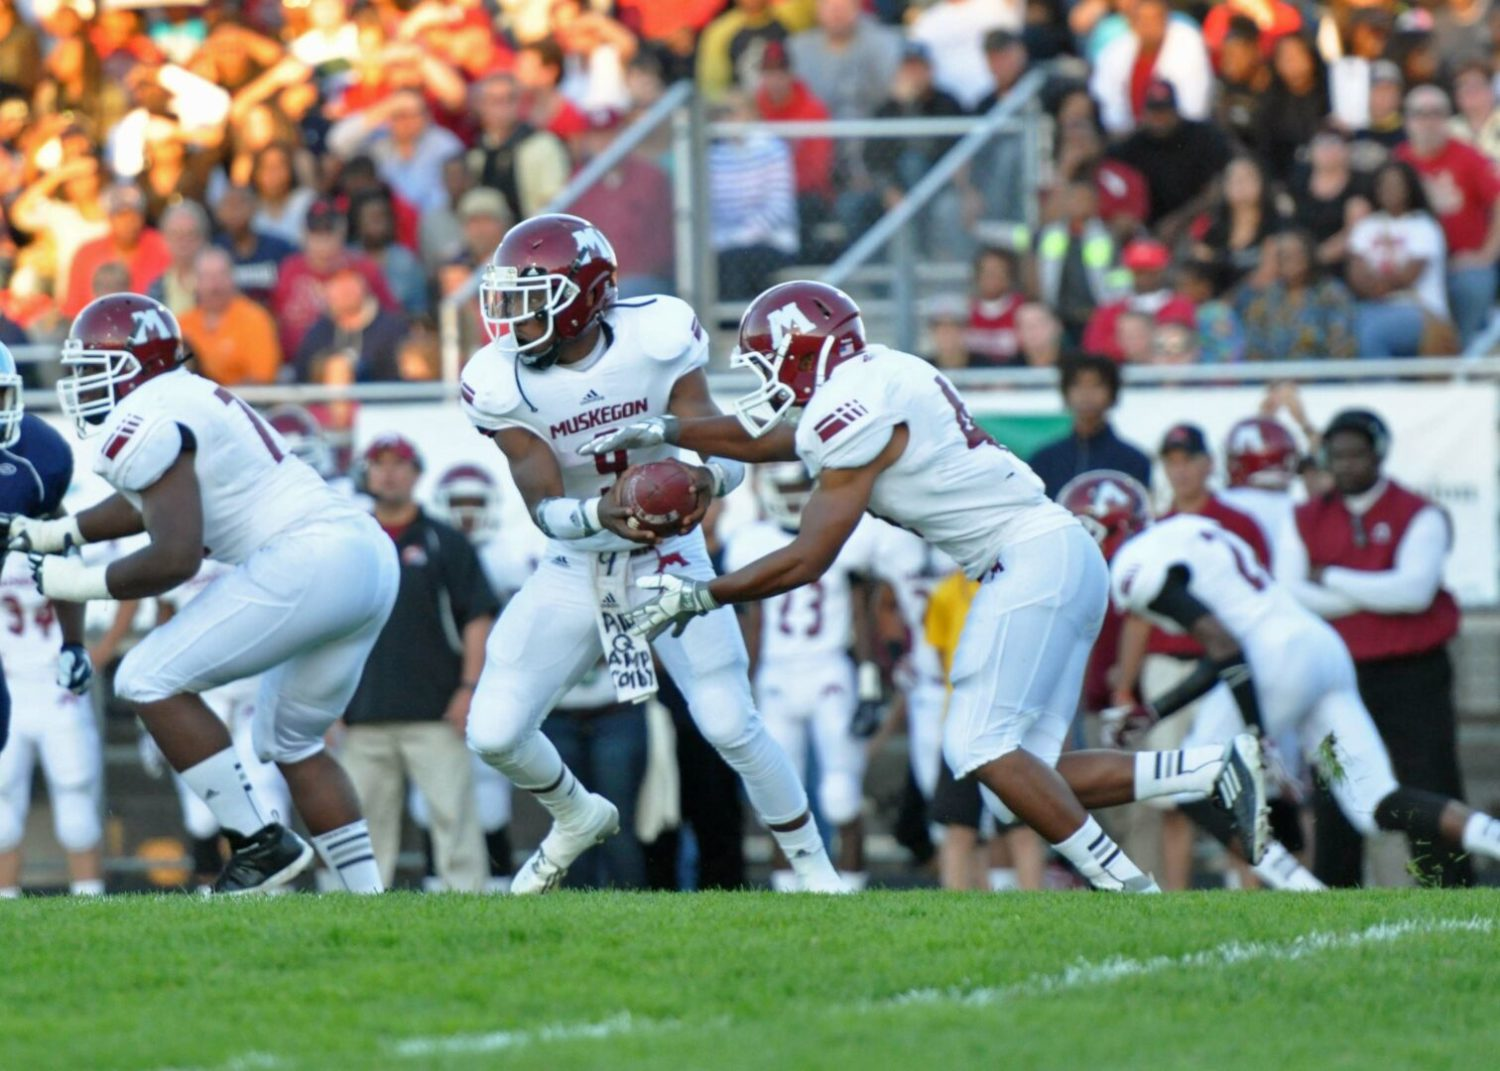 Huge crowd witnesses a classic football game as Muskegon Big Reds outlast Mona Shores